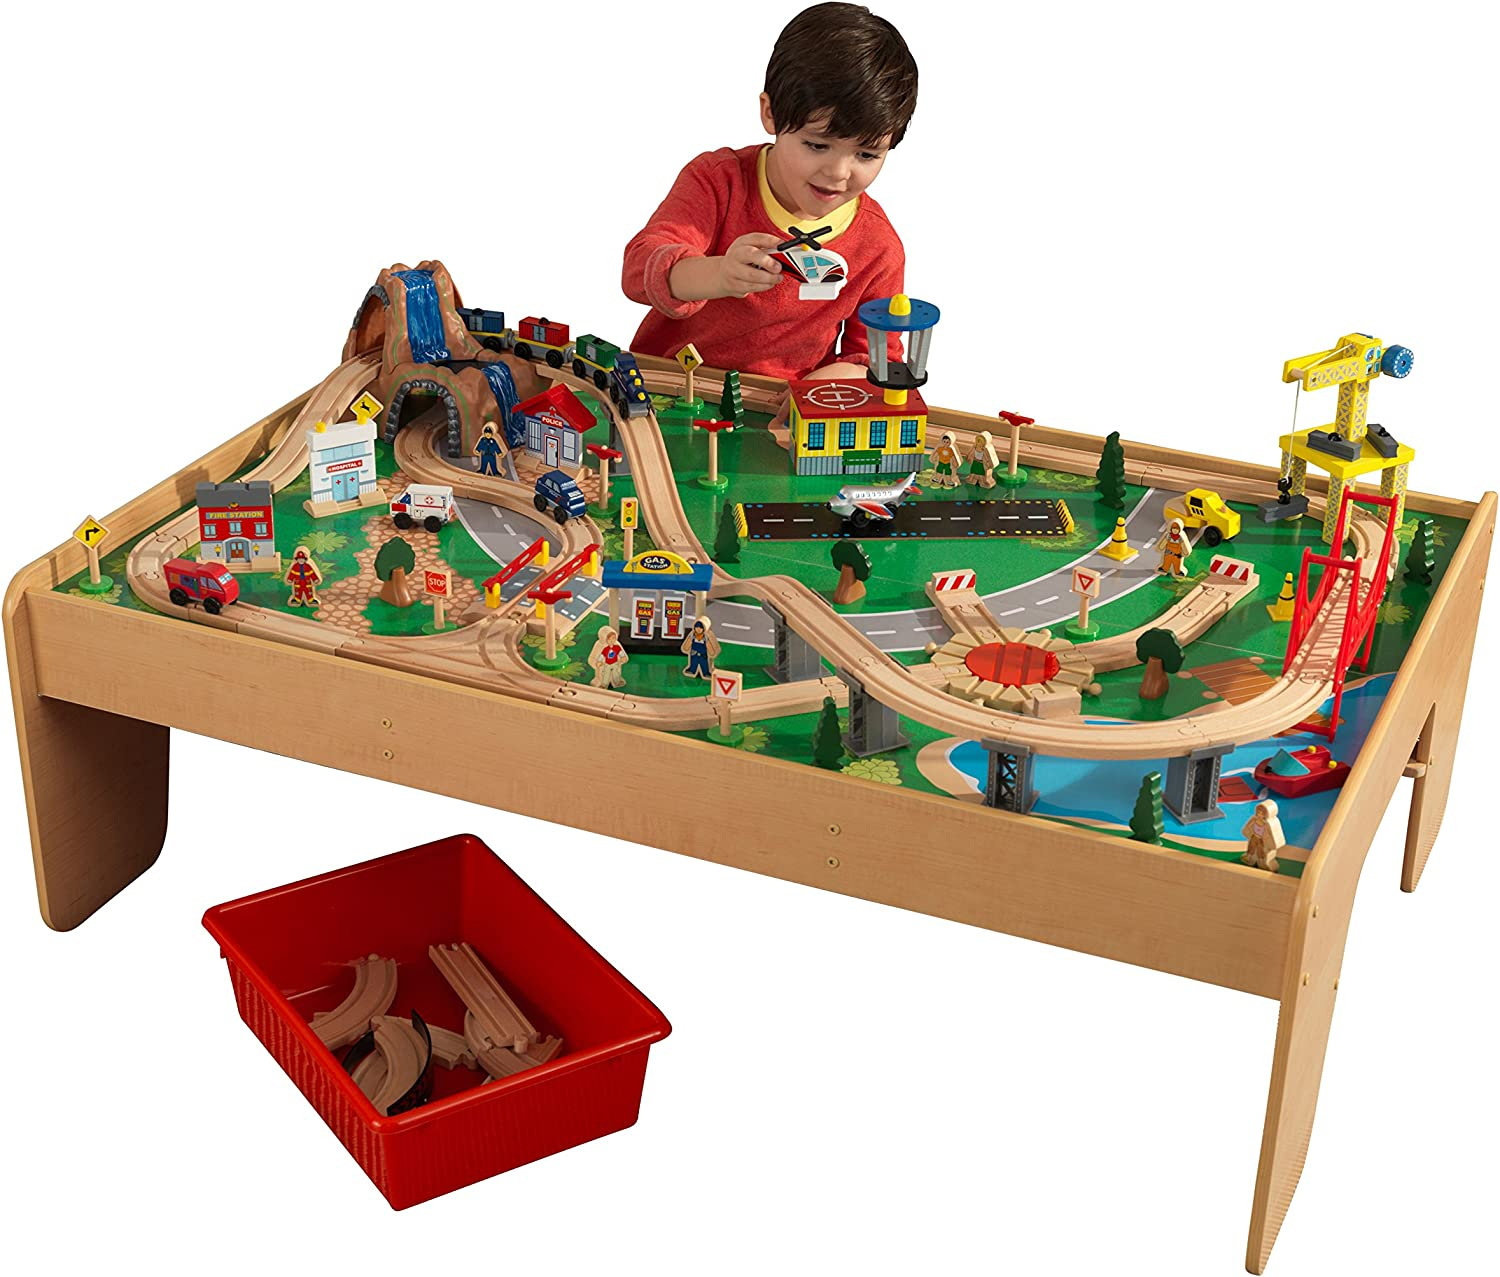 Top 10 Best Train Table For Toddlers (2020 Reviews & Buying Guide) 6